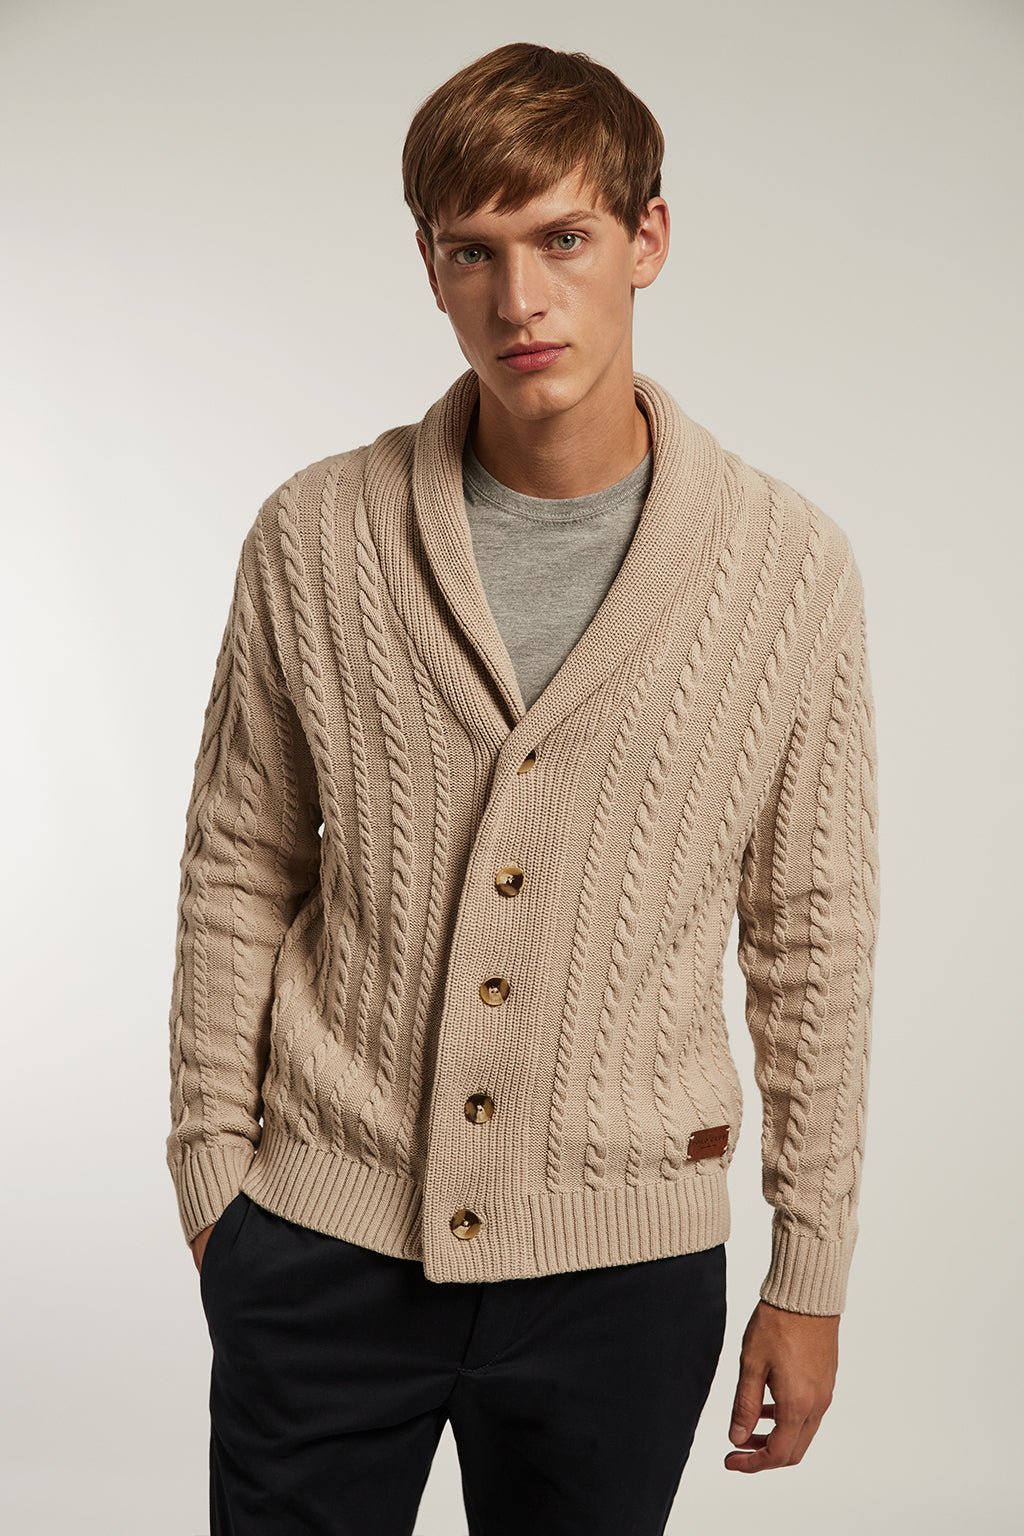 Sand cardigan with lapel collar